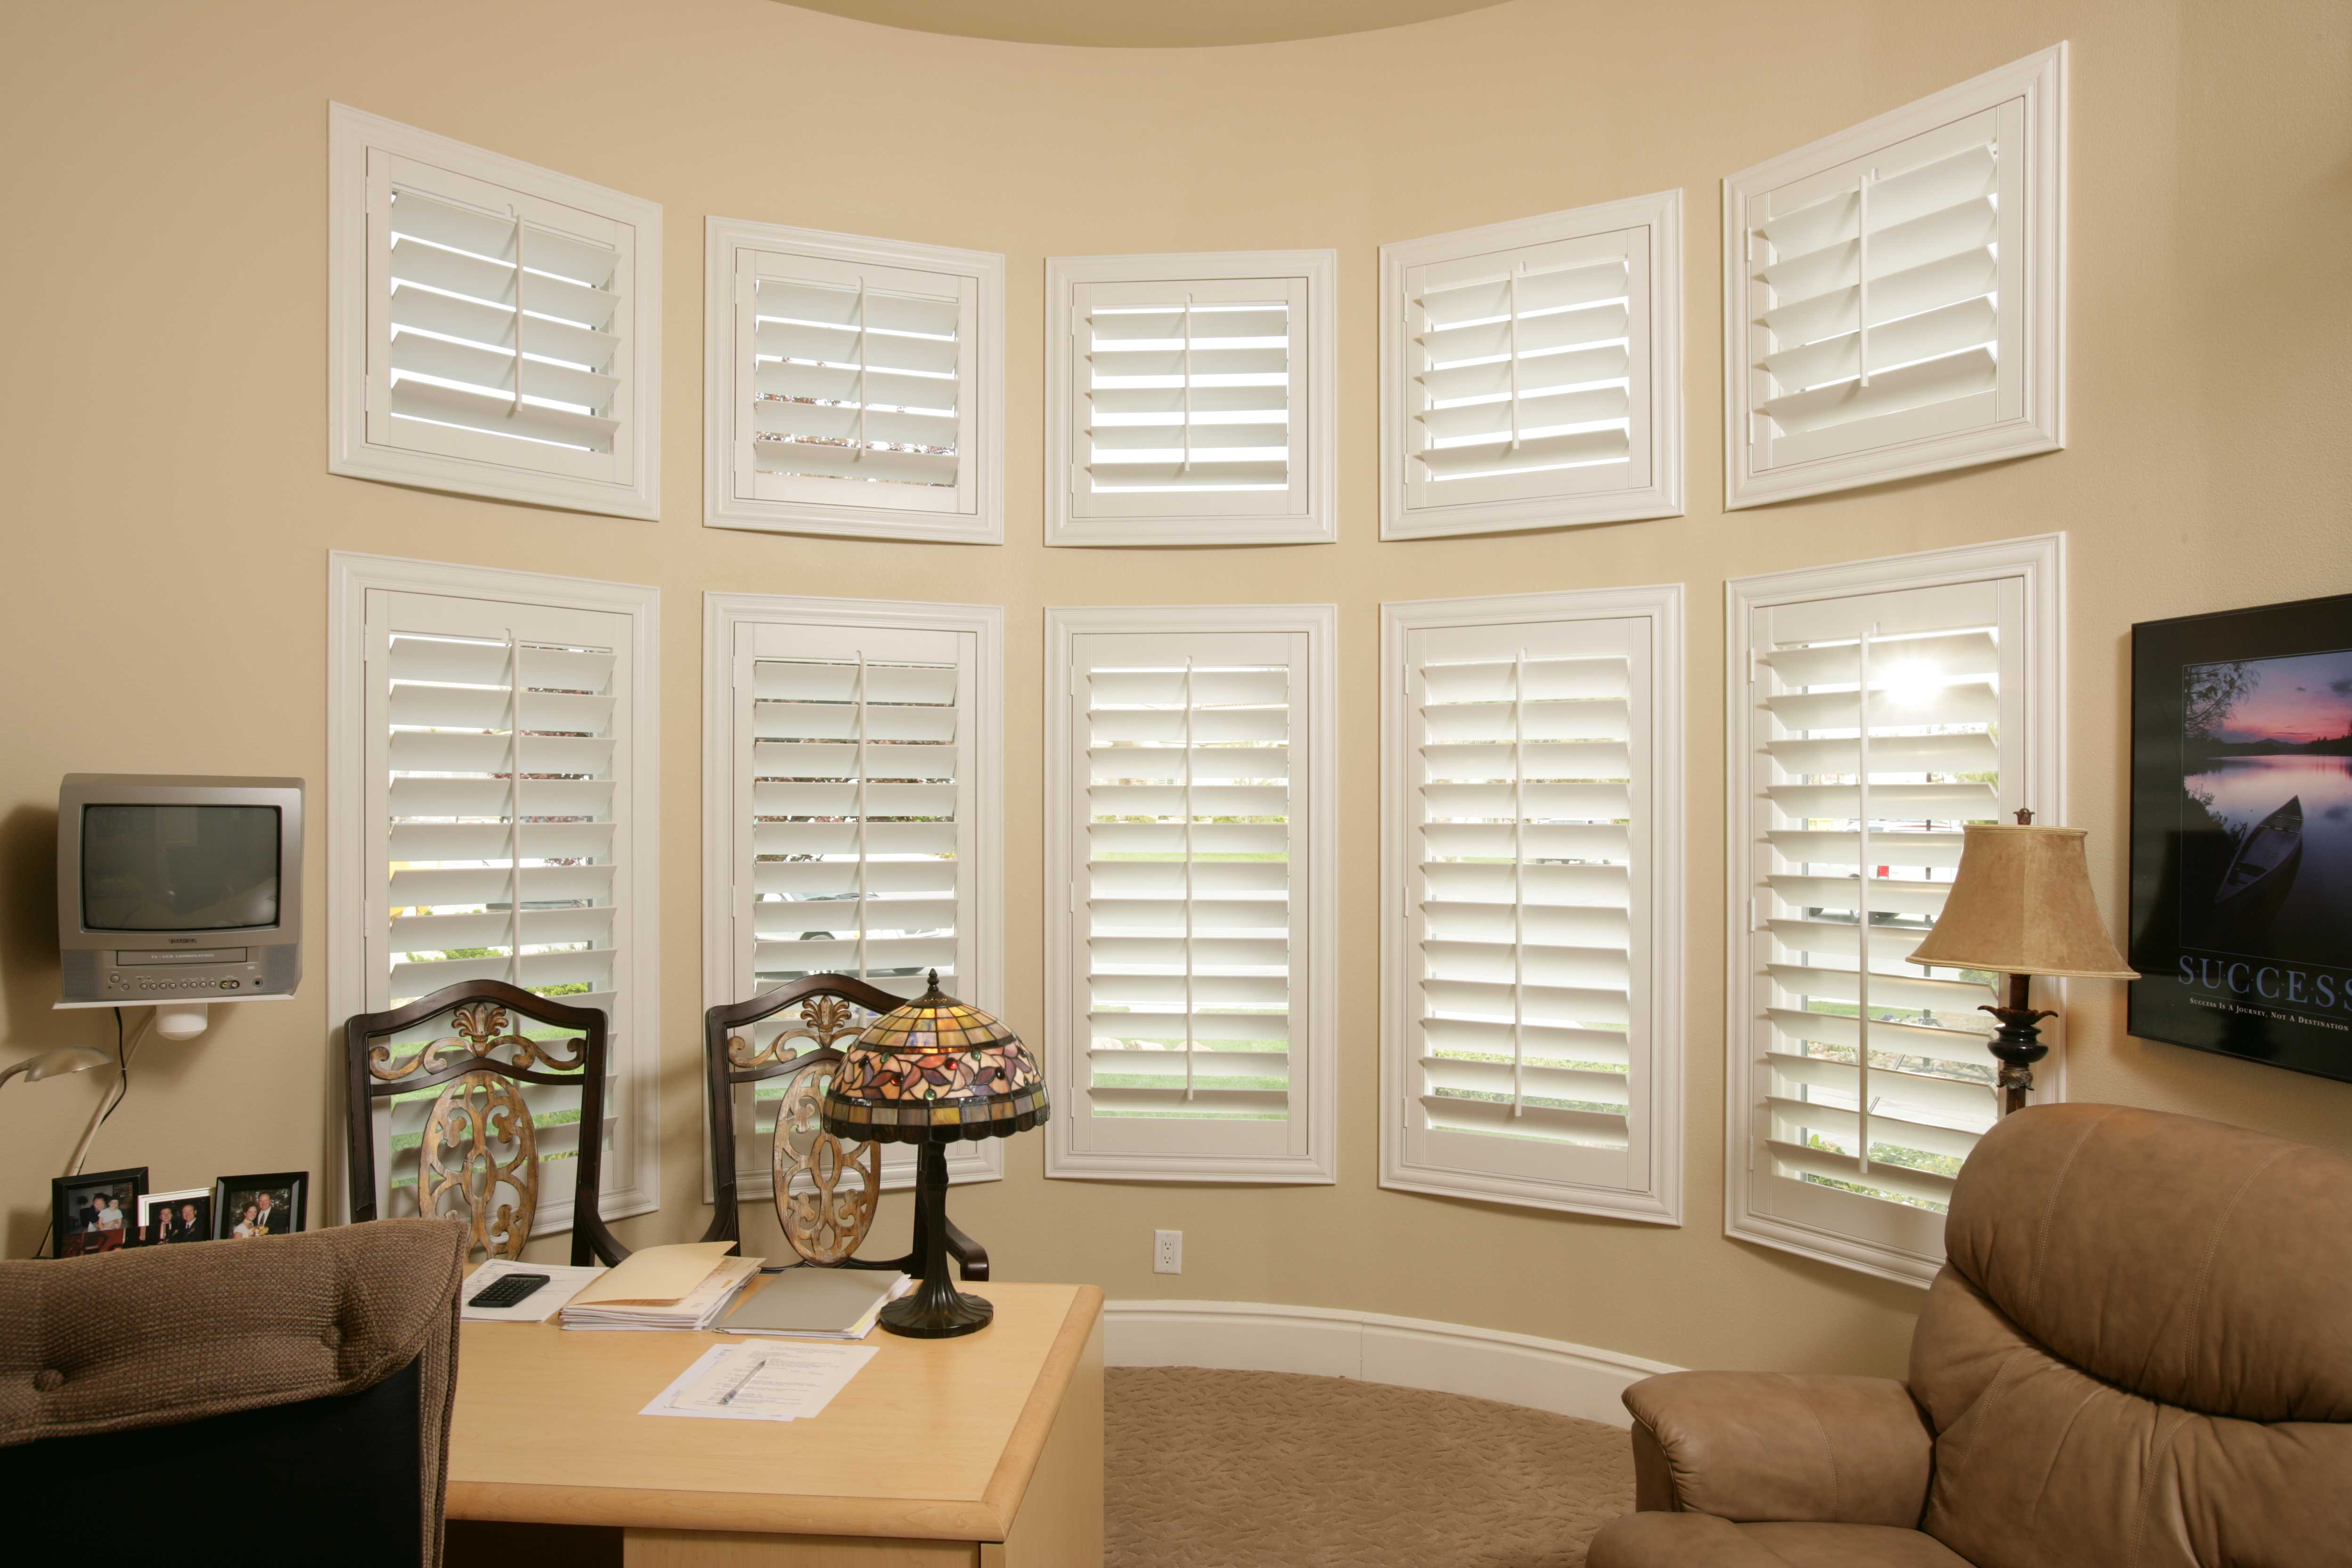 line ideas club custom blinds local windows and faux inspirational window blind sells fresh buy mini baliblinds who bali of